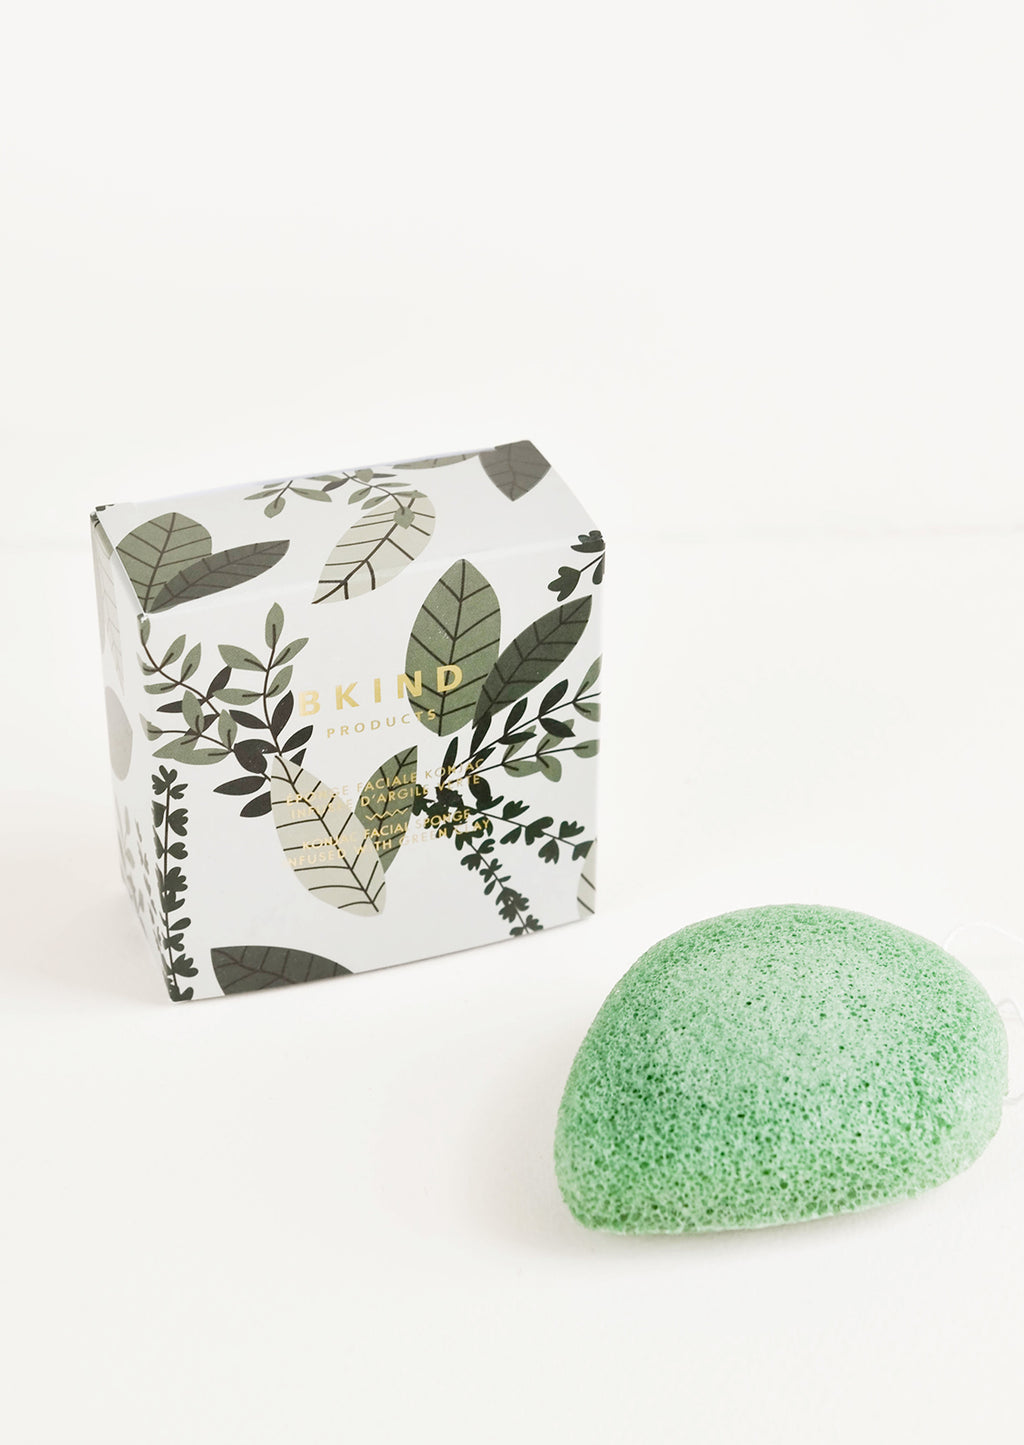 Green Clay: BKIND Konjac Facial Sponge in Green Clay - LEIF